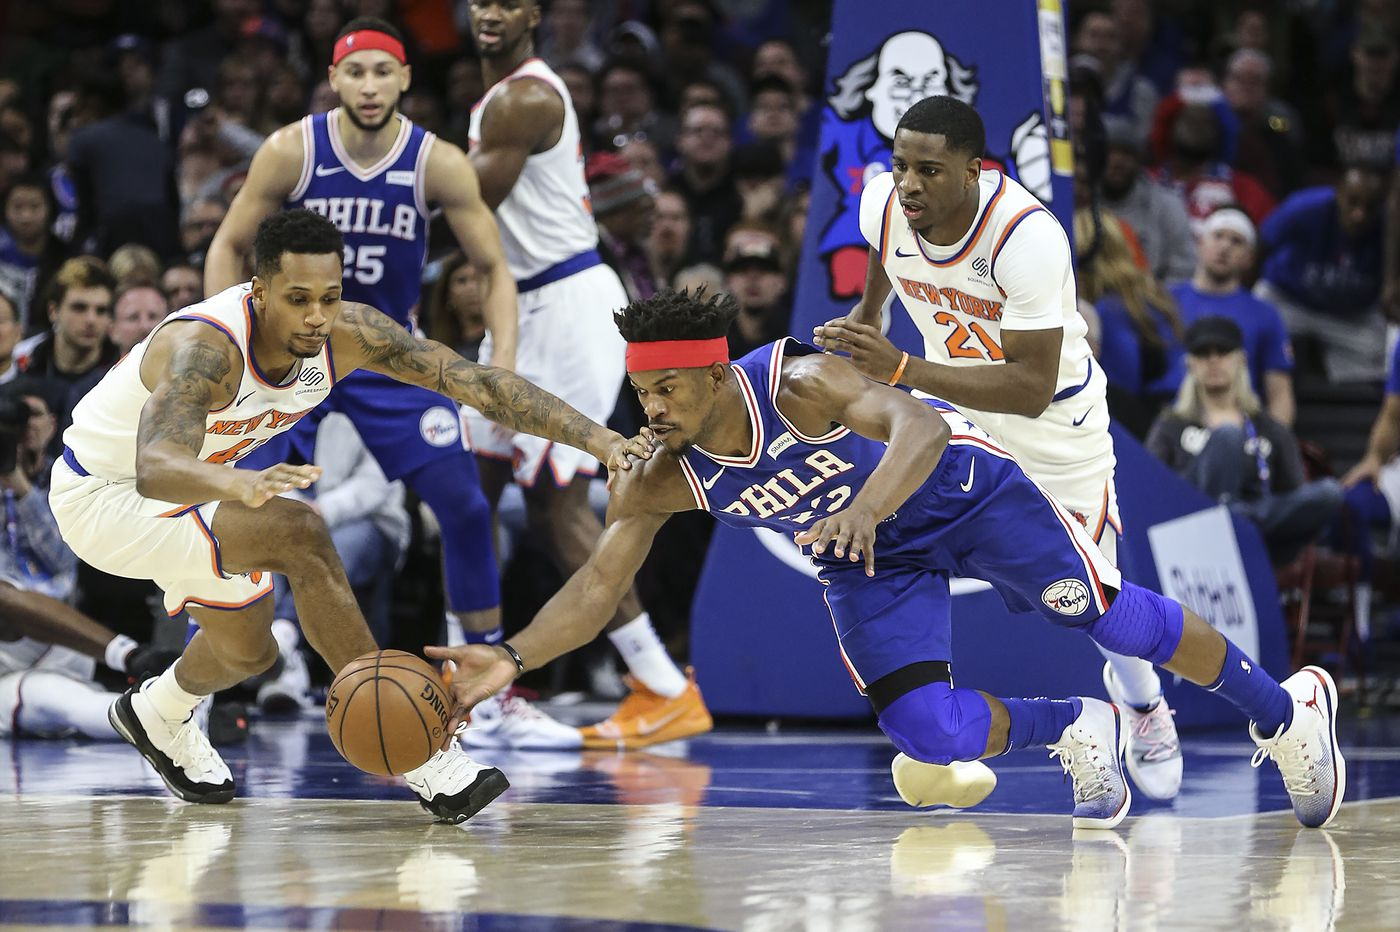 The Sixers need Jimmy Butler to stop holding back on the court